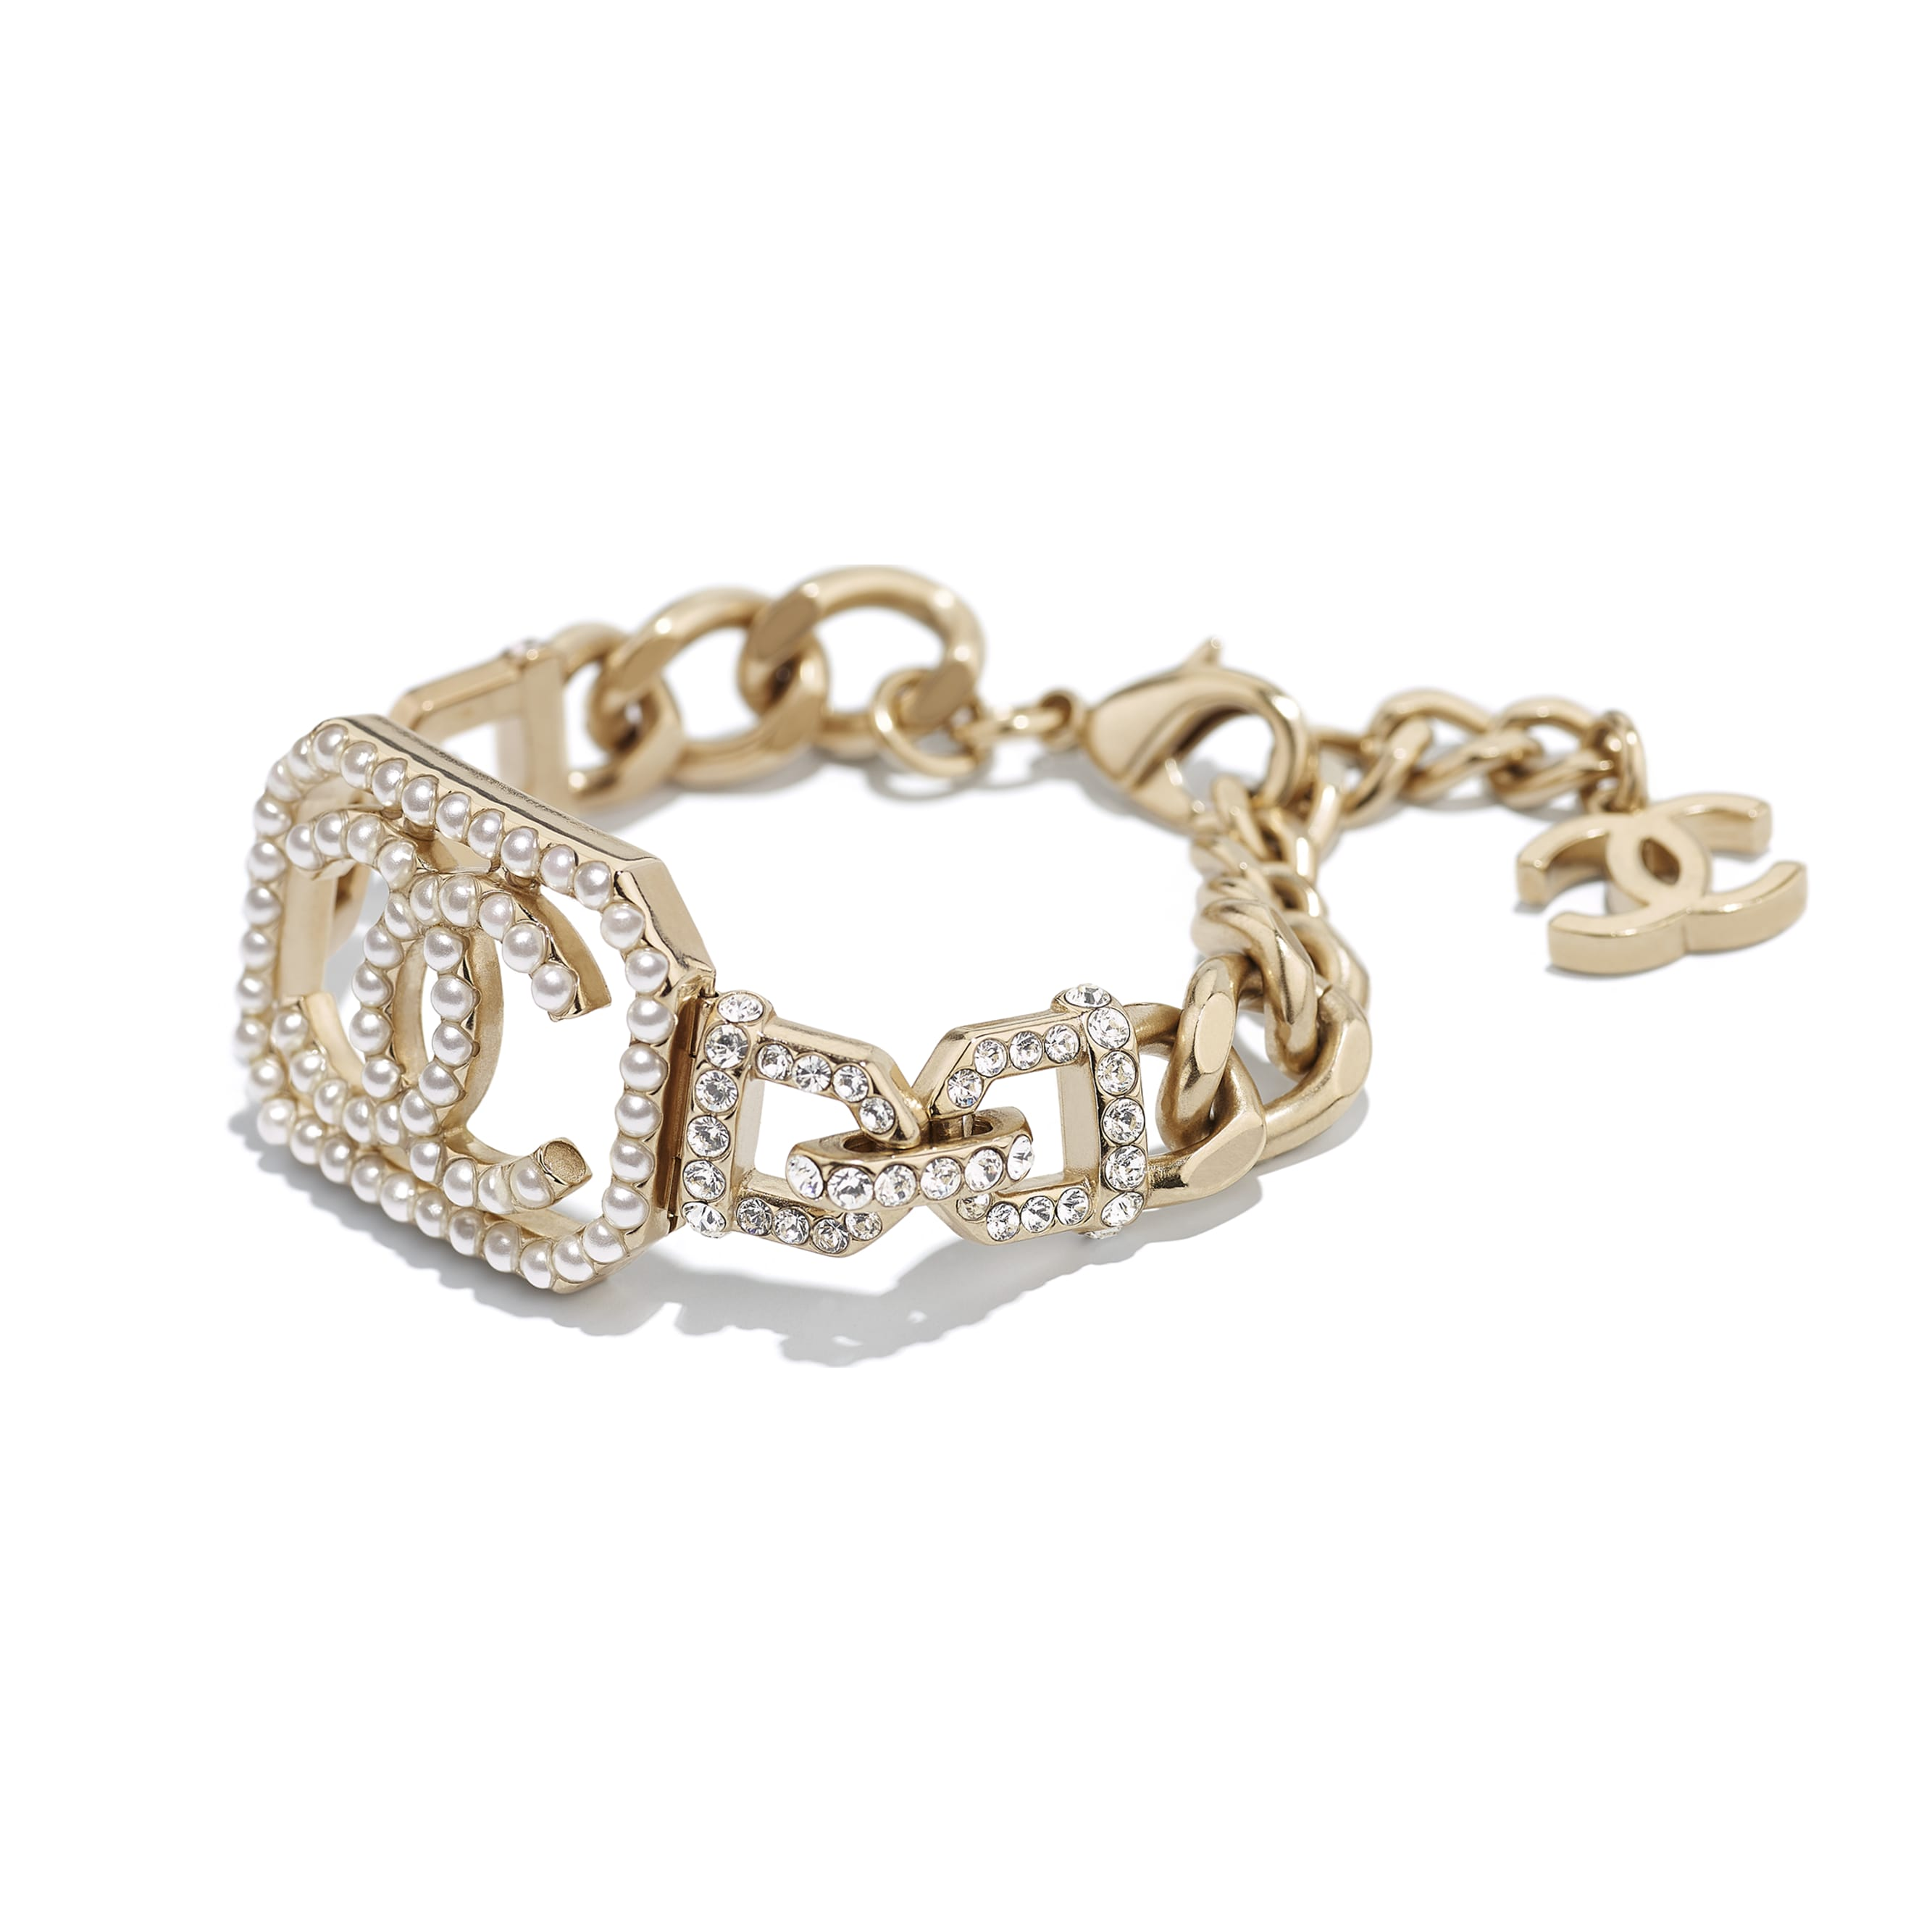 Bracelet - Gold, Pearly White & Crystal - Metal, Imitation Pearls & Diamanté - CHANEL - Alternative view - see standard sized version